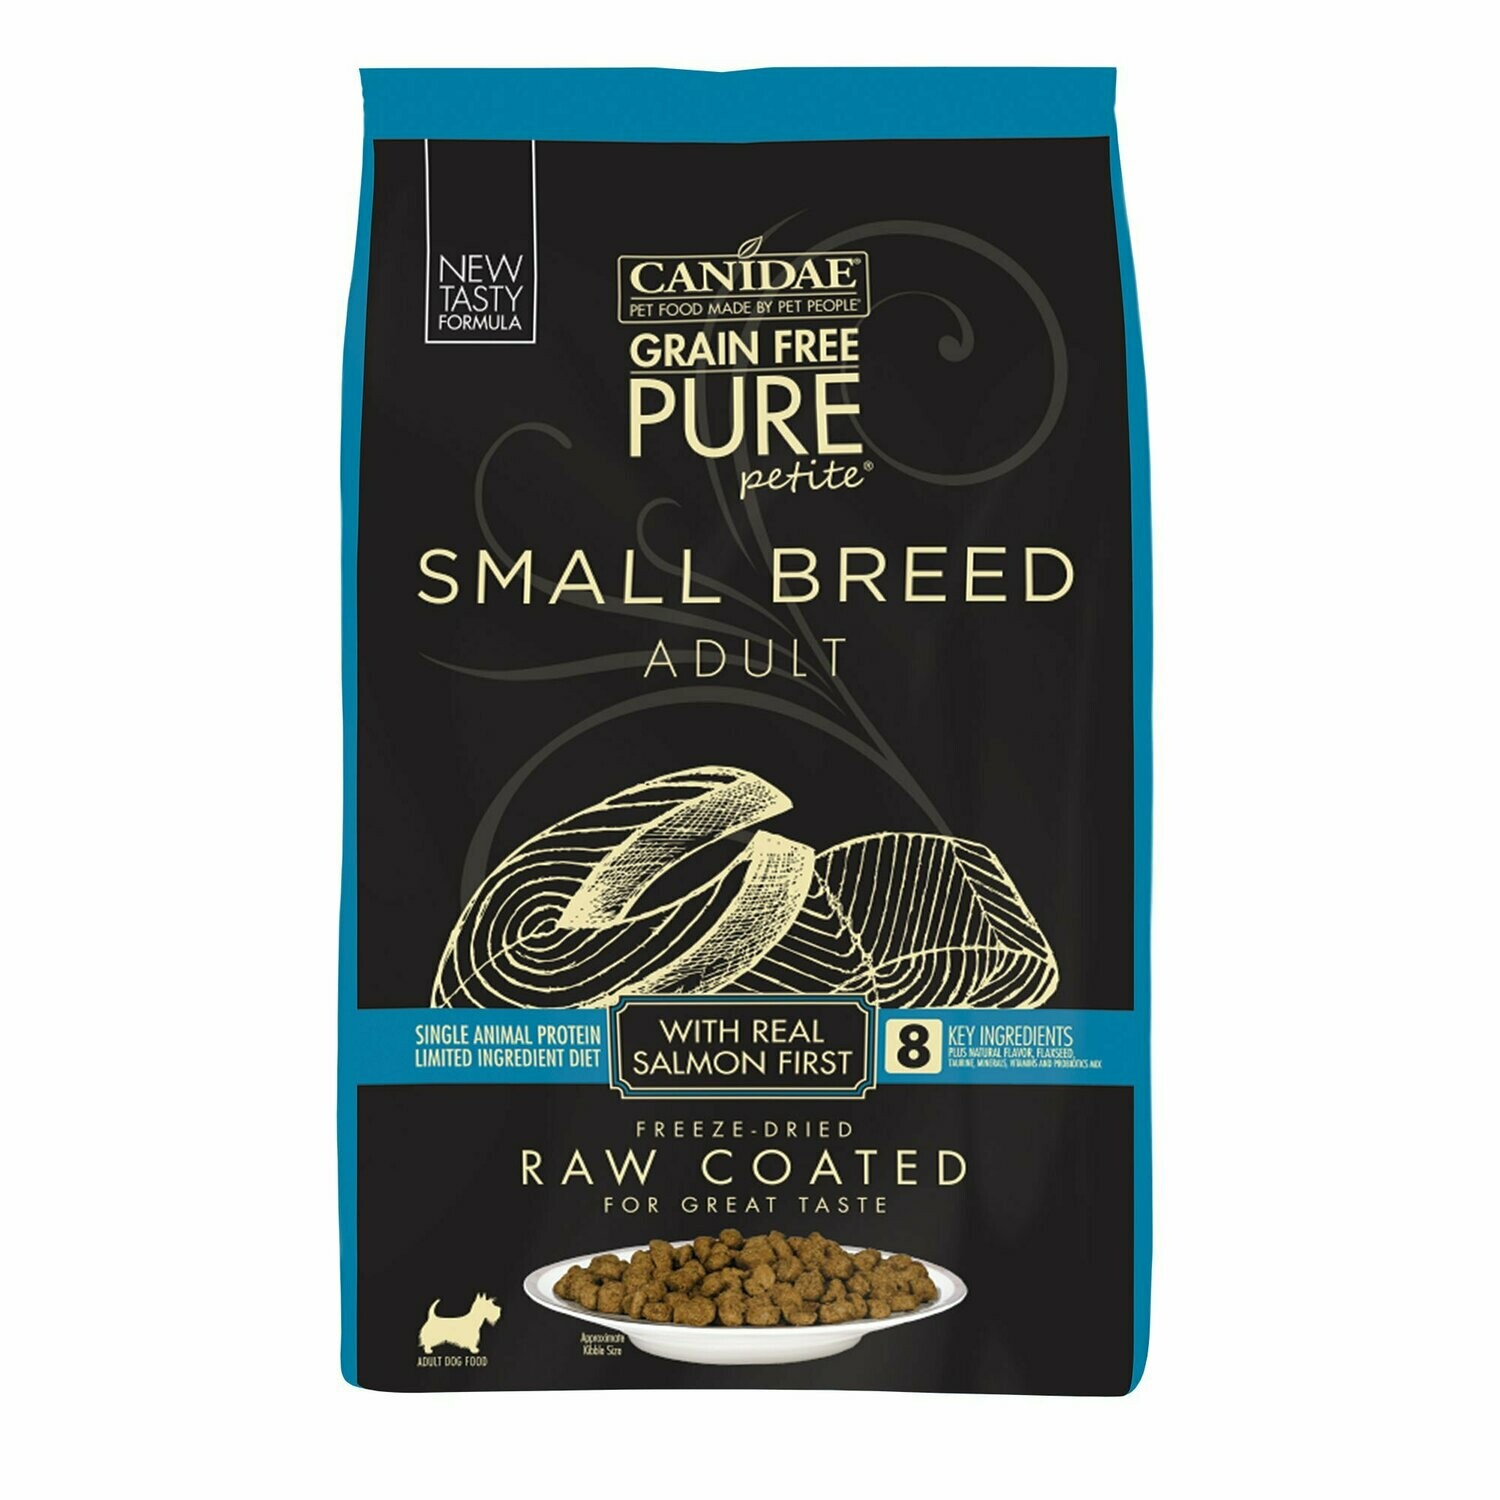 Canidae-Pure-Canidae Pure Petite Small Breed Adult Dog Food- Fresh Salmon 10 Lb